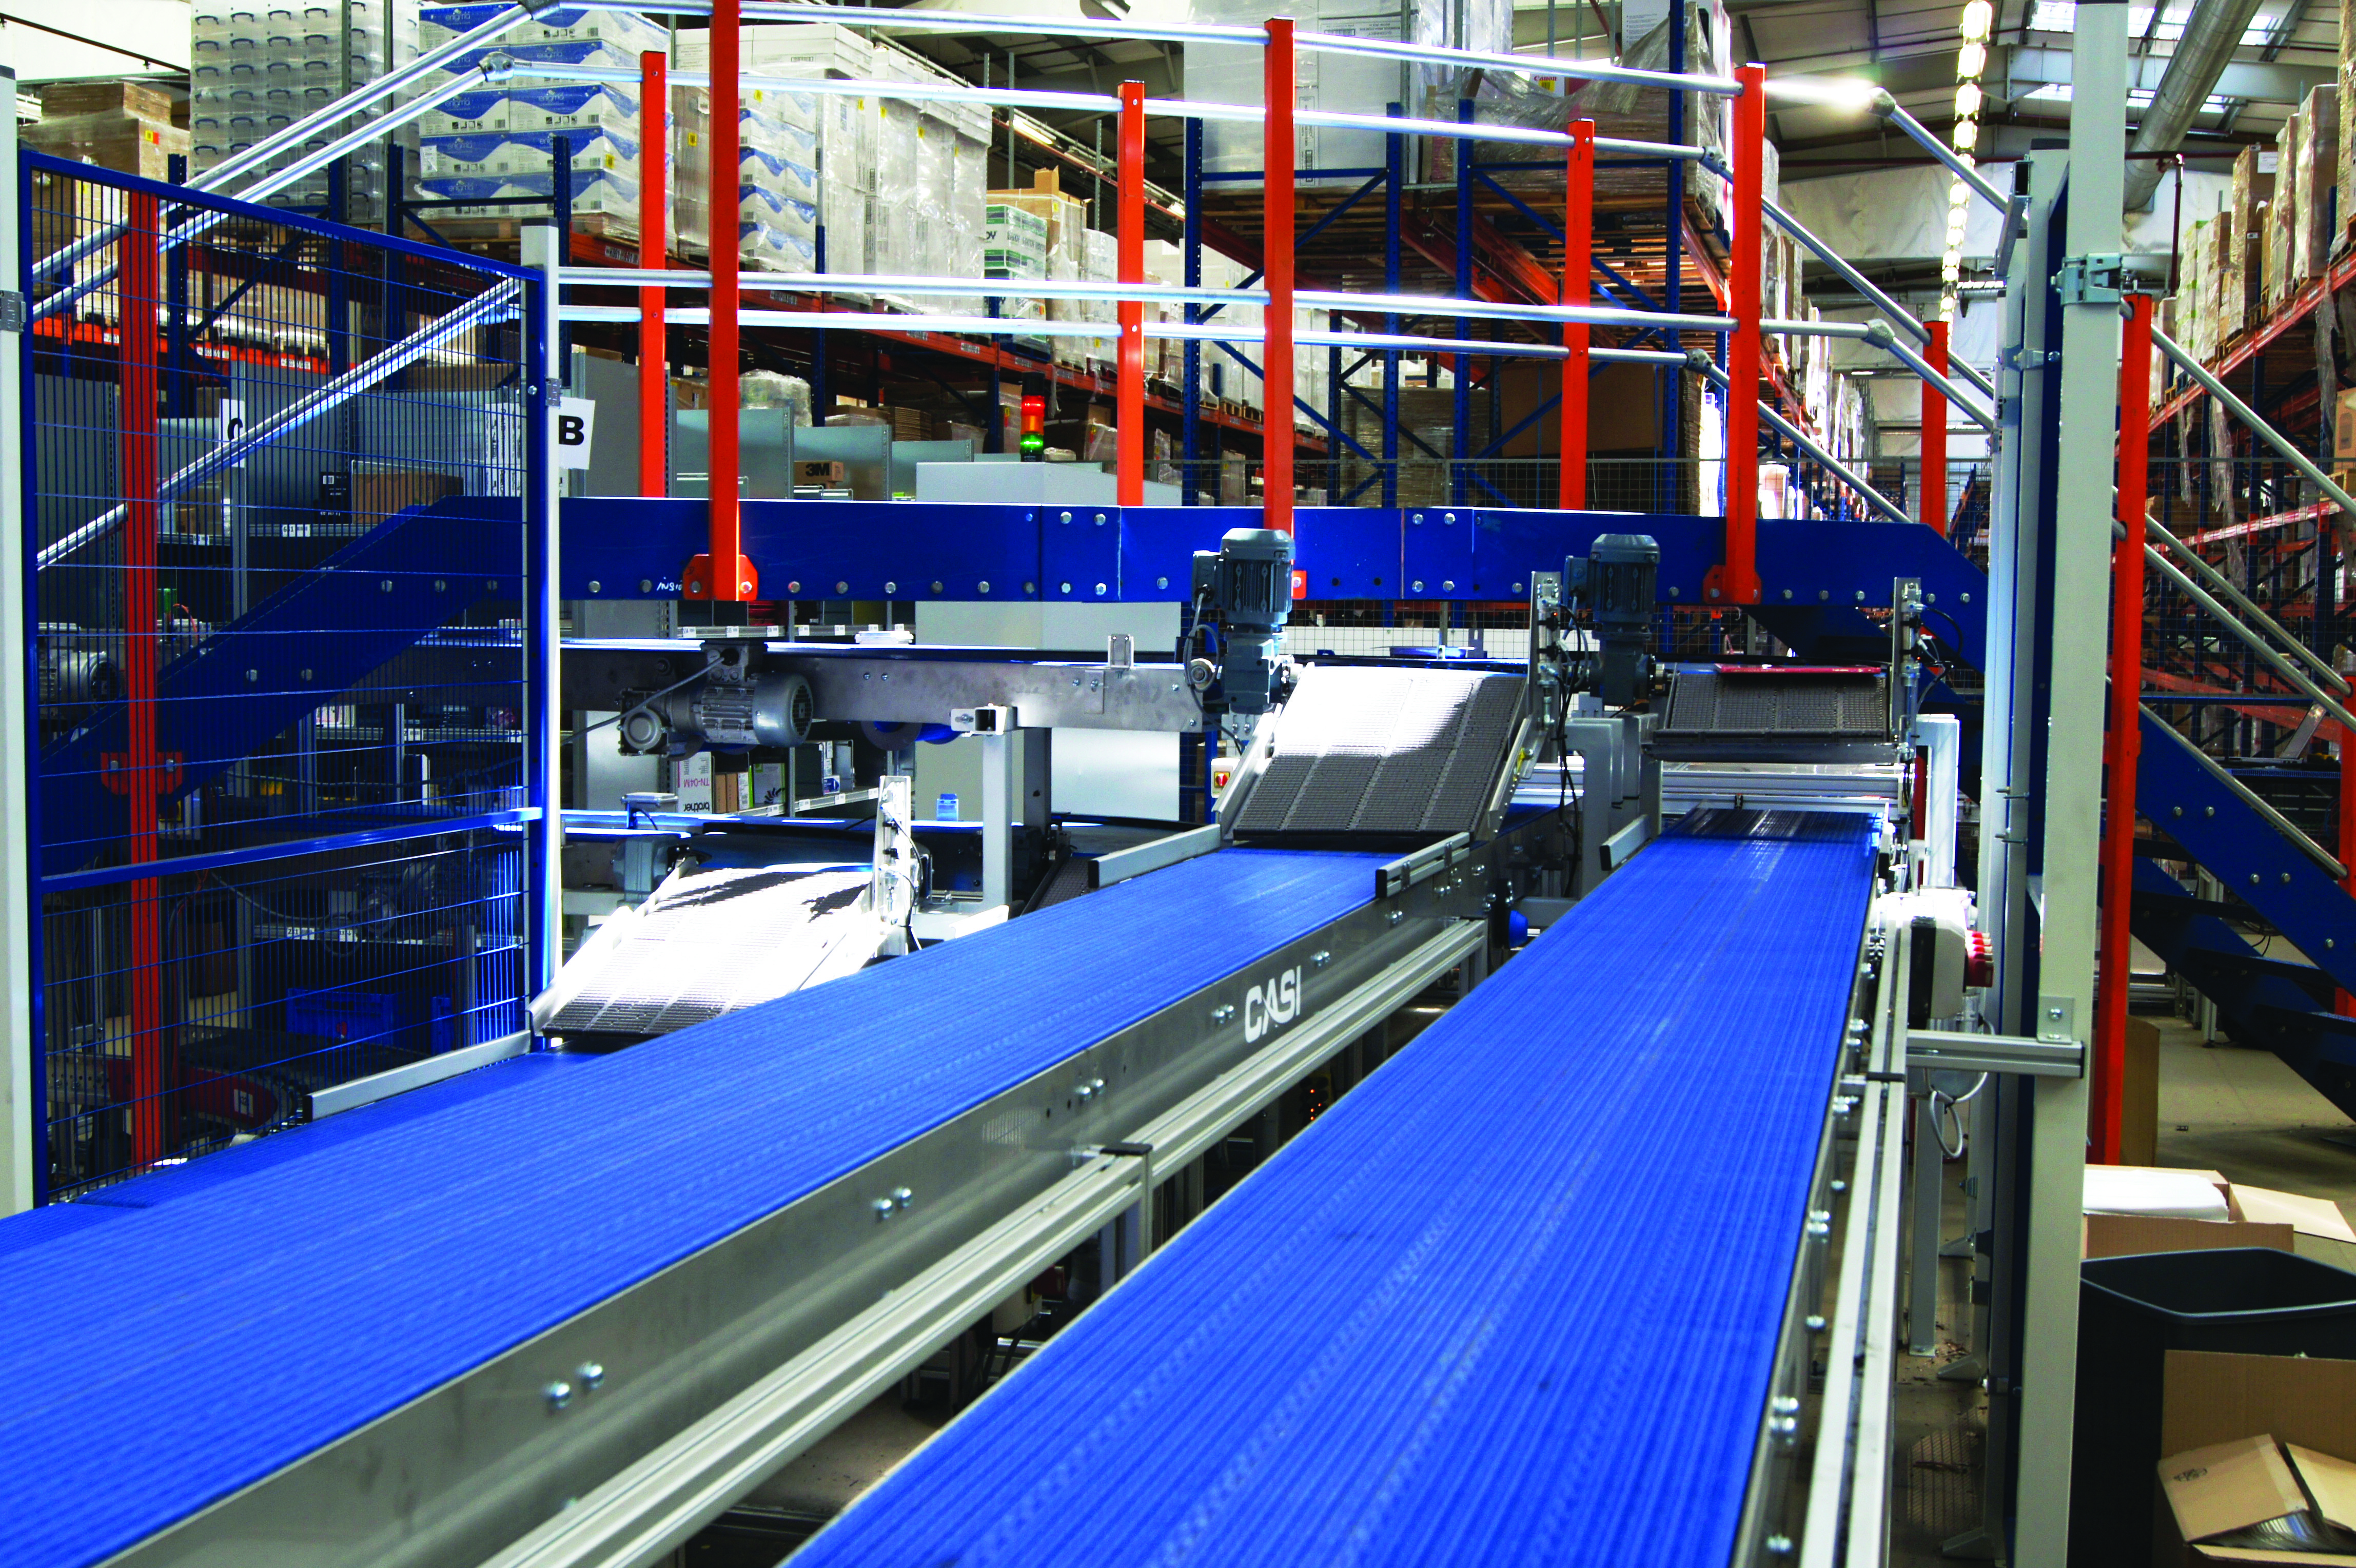 SPHERE Powered Roller conveyors used cutting-edge 24V DC technology from Interroll, which proved to be energy saving and highly efficient.